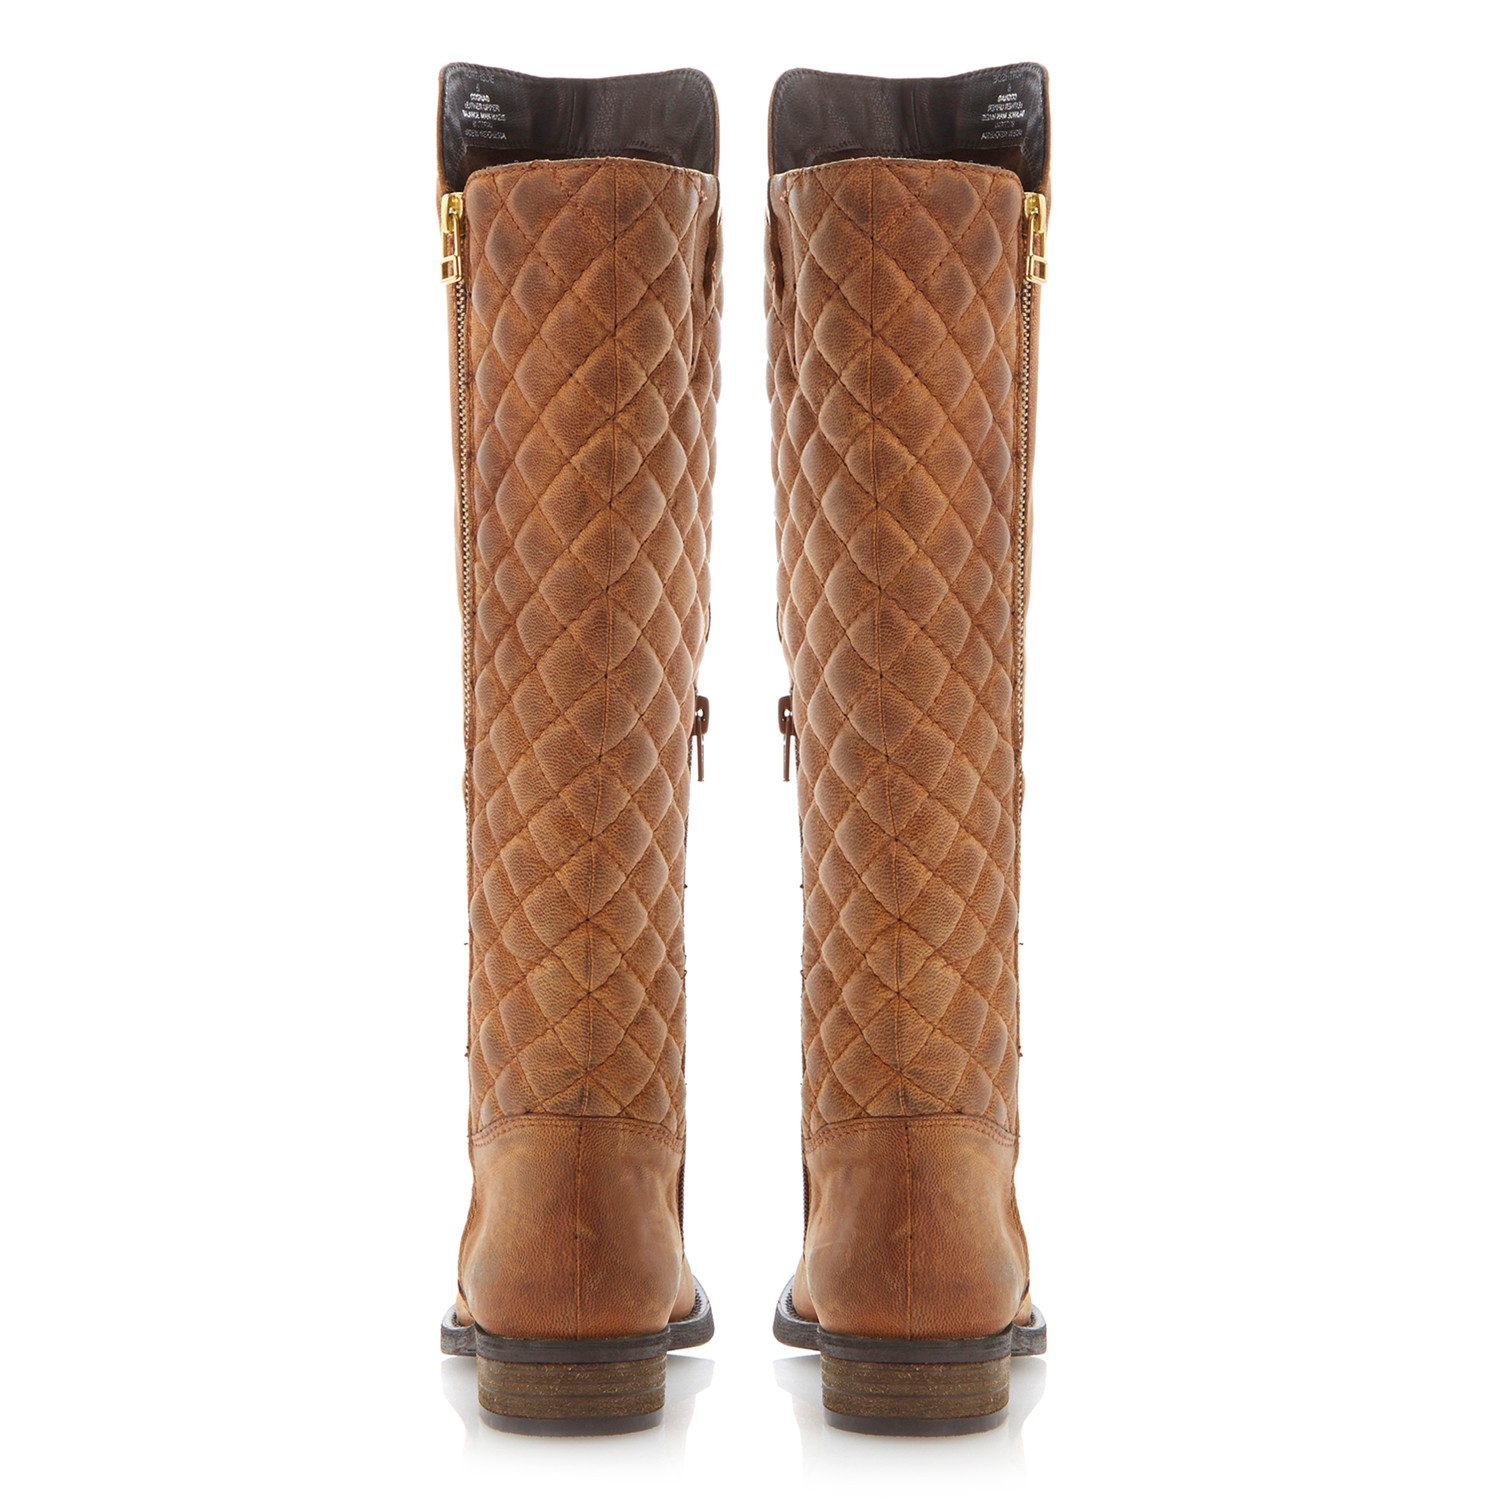 Steve Madden Northside Leather Knee High Boots in Tan (Brown)